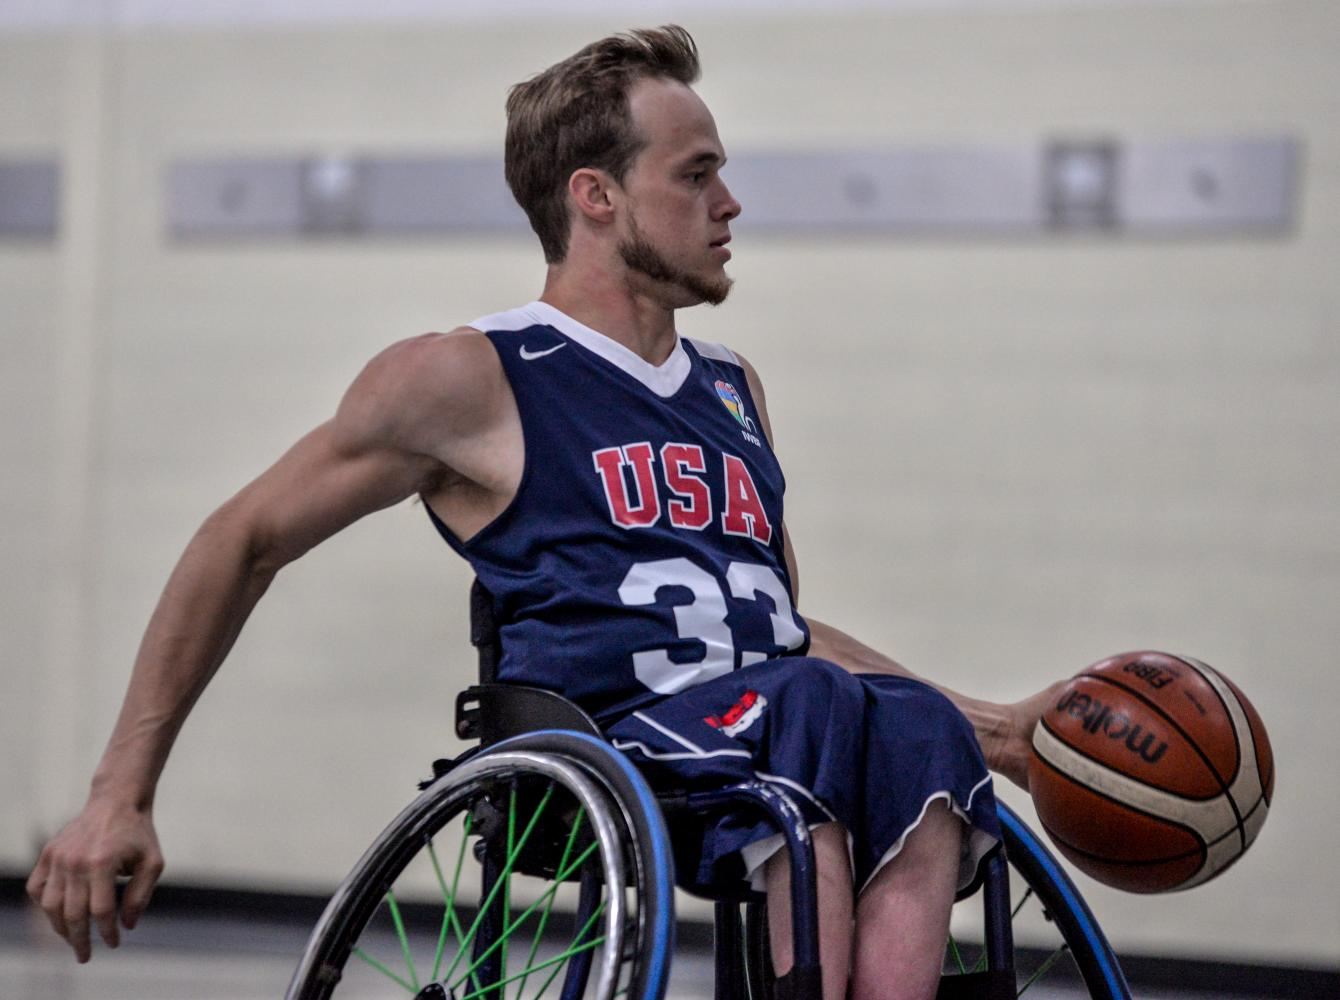 Former Warhawk men's wheelchair basketball player and current UW-W employee John Boie made the most of his summer representing the United States in the 2017 International Wheelchair Basketball Federation America's Qualifier.